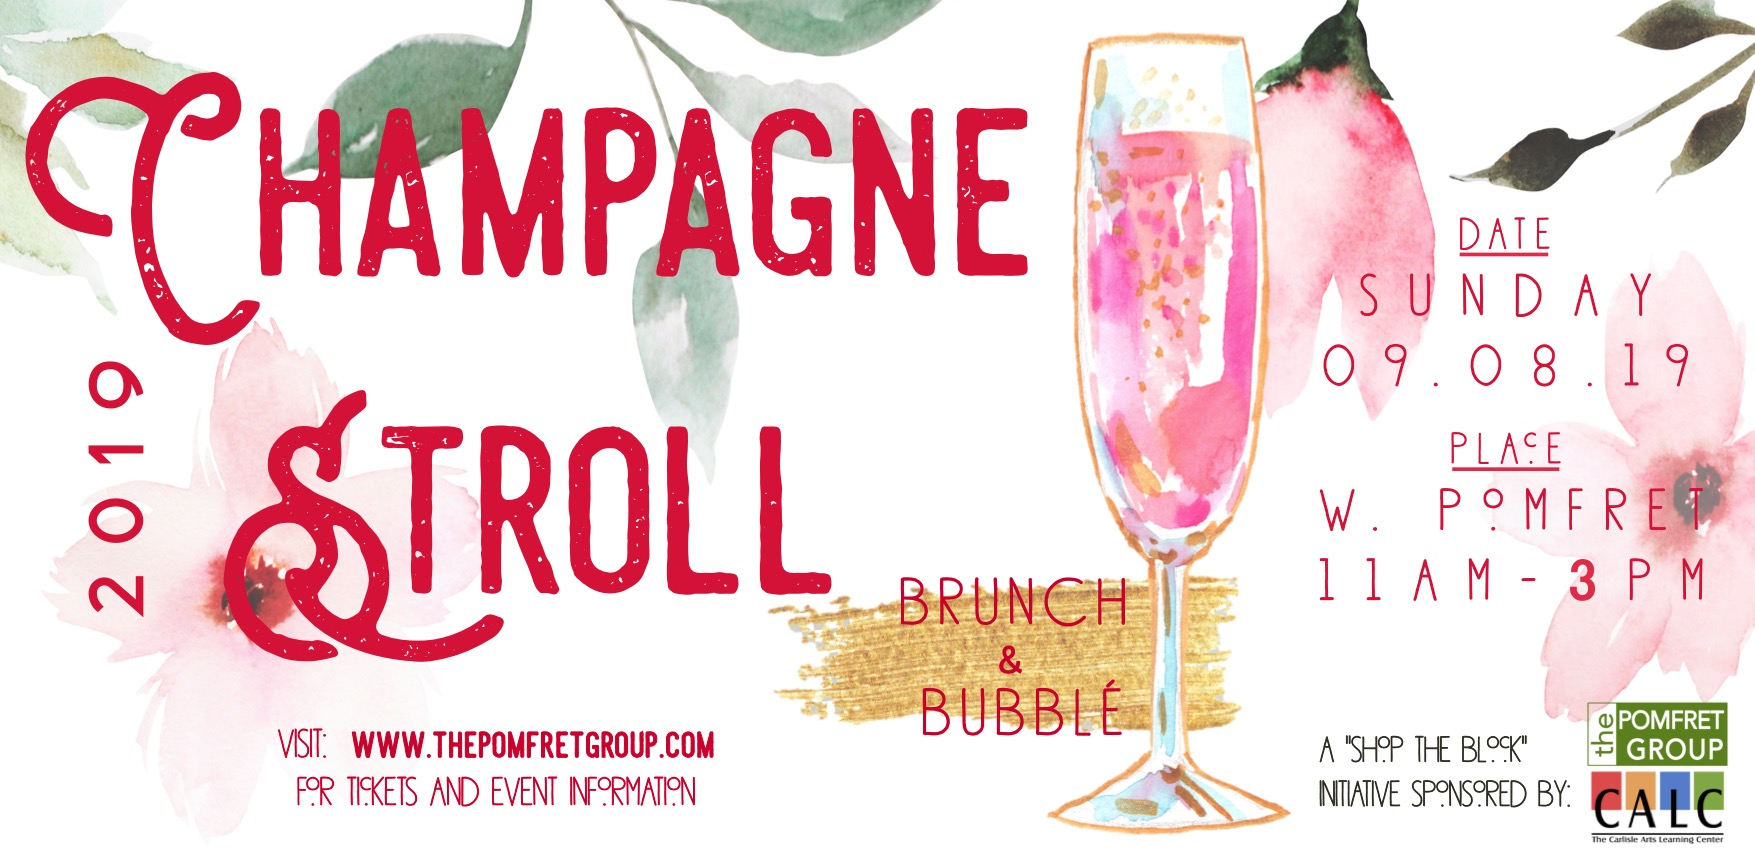 Champage Stroll 2019 Cover Photo.jpg